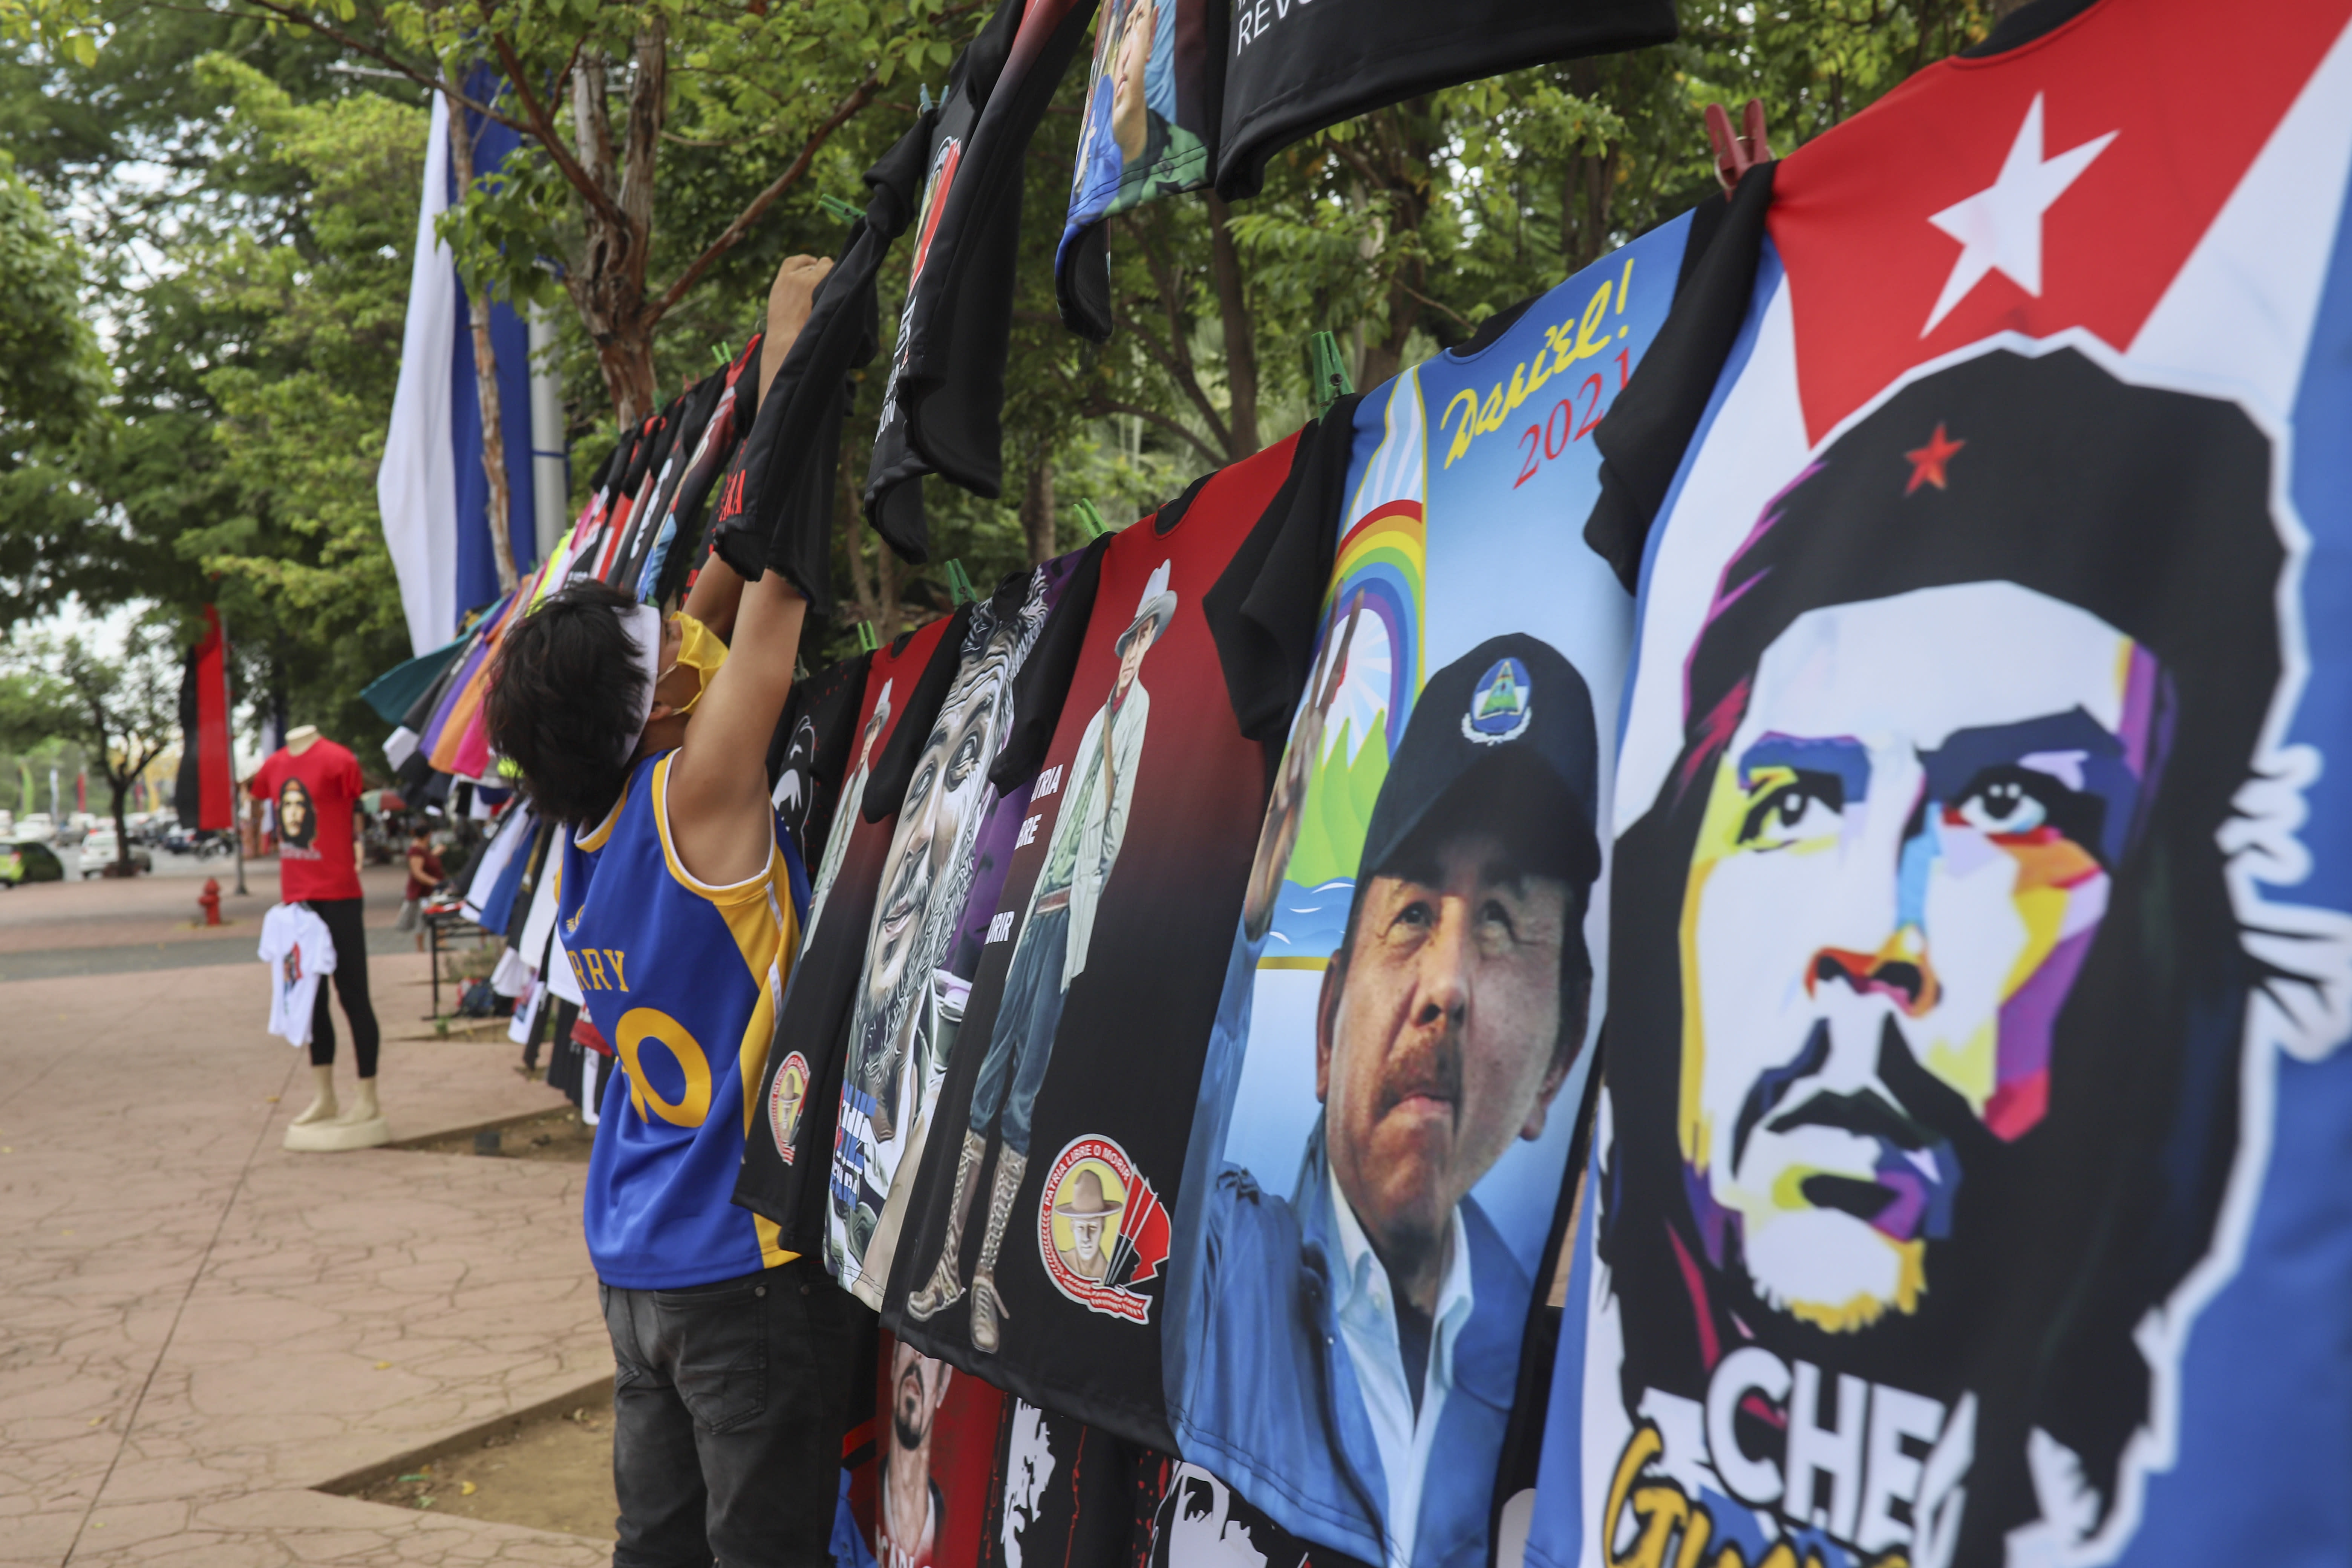 """A vendor sells T-shirts promoting Nicaraguan President Daniel Ortega and The Sandinista National Liberation Front ruling party on the sidelines of a new monument, called the Peace Bell, before its inauguration ceremony later in the day in Managua, Nicaragua, Friday, July 17, 2020. Nicaraguan President Daniel Ortega's government is being deterred by the new coronavirus from holding the usual mass celebration to mark the victory of the country's revolution July 19, and will instead unveil a new addition to its collection of monuments. At right is a T-shirt of Cuba's revolutionary hero Ernesto """"Che"""" Guevara. (AP Photo/Alfredo Zuniga)"""